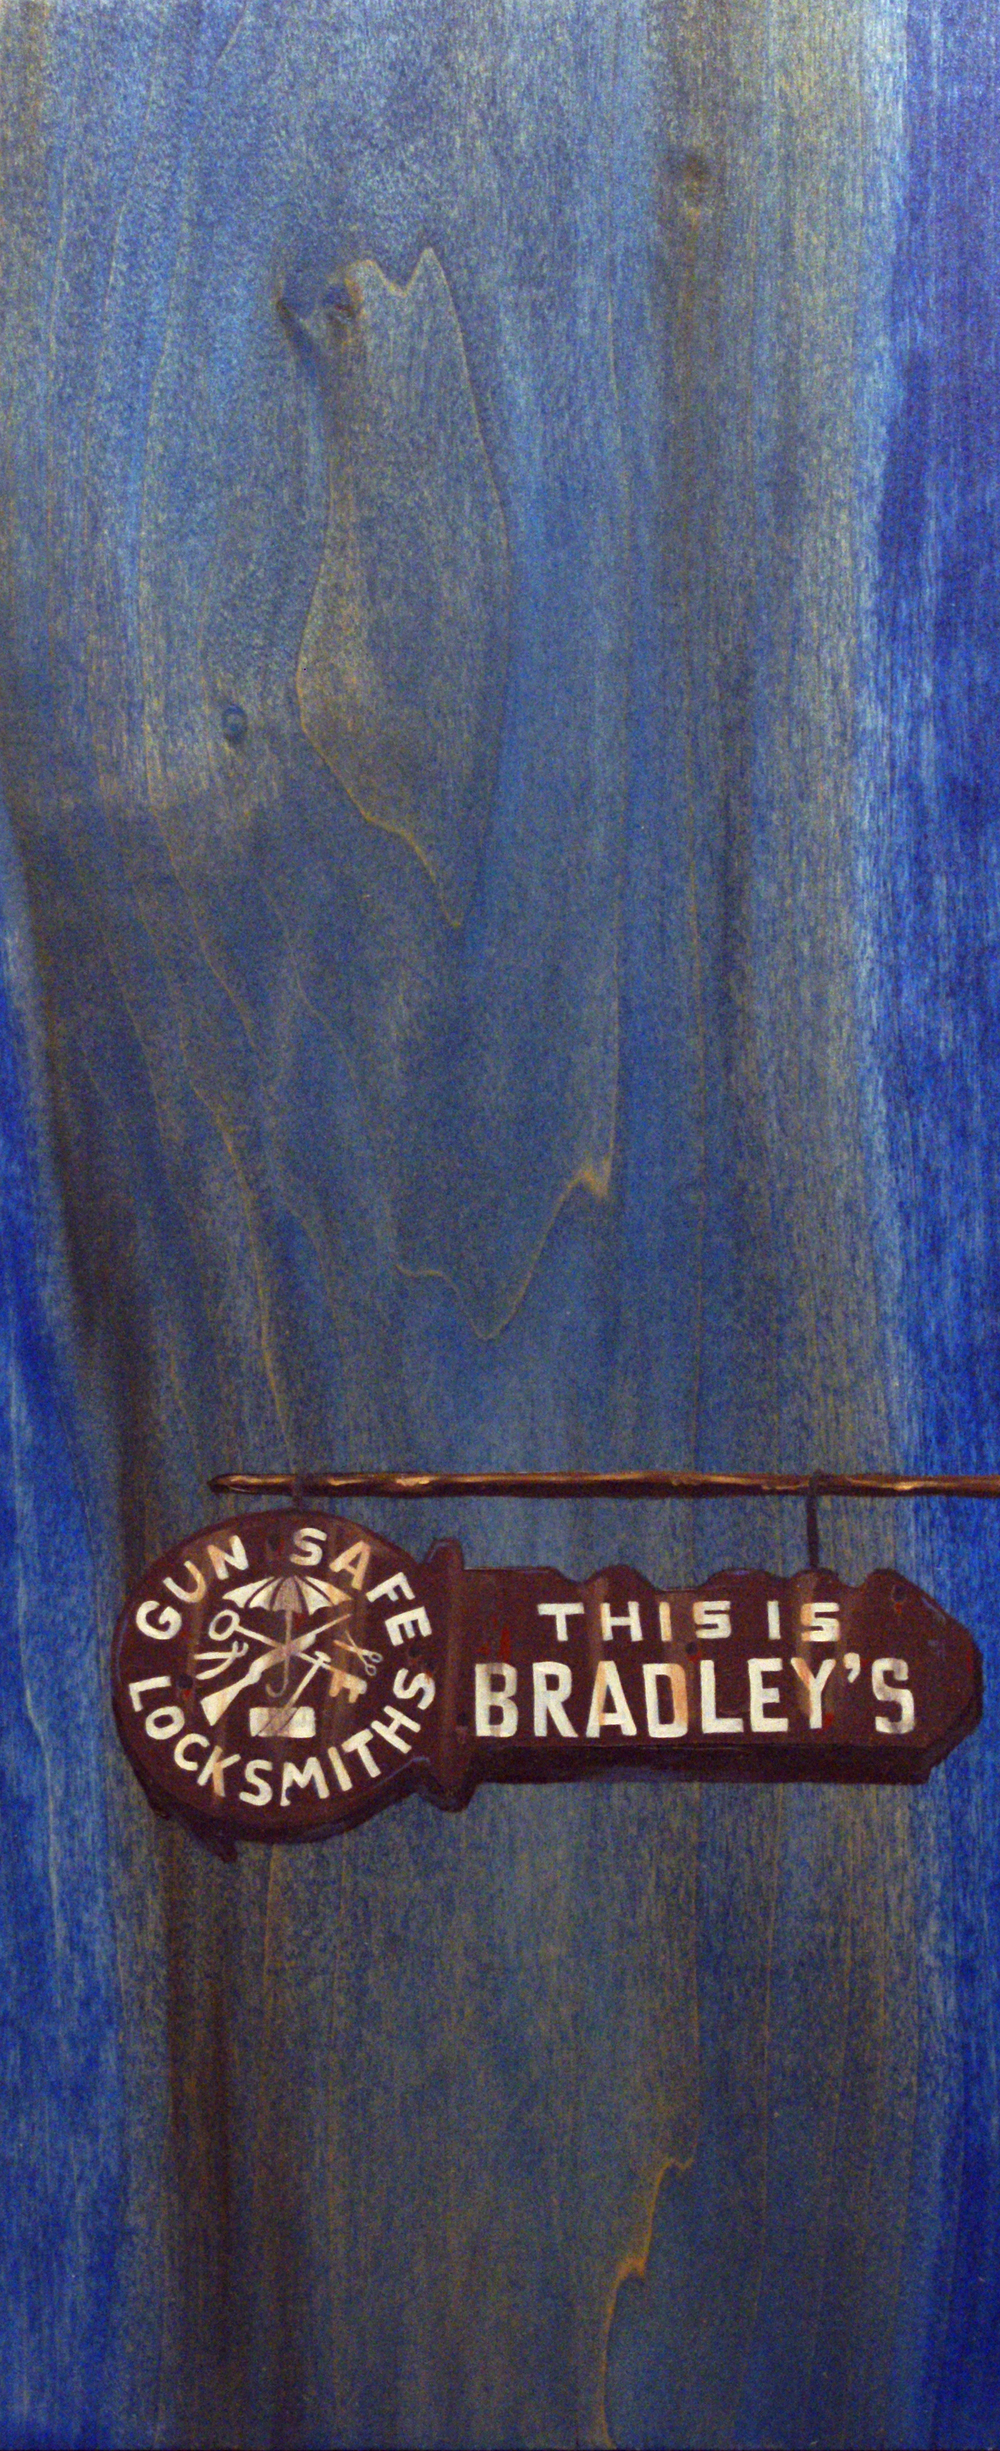 "Bradley's, 18"" x 8"", oil and acrylic on wood, 2011"